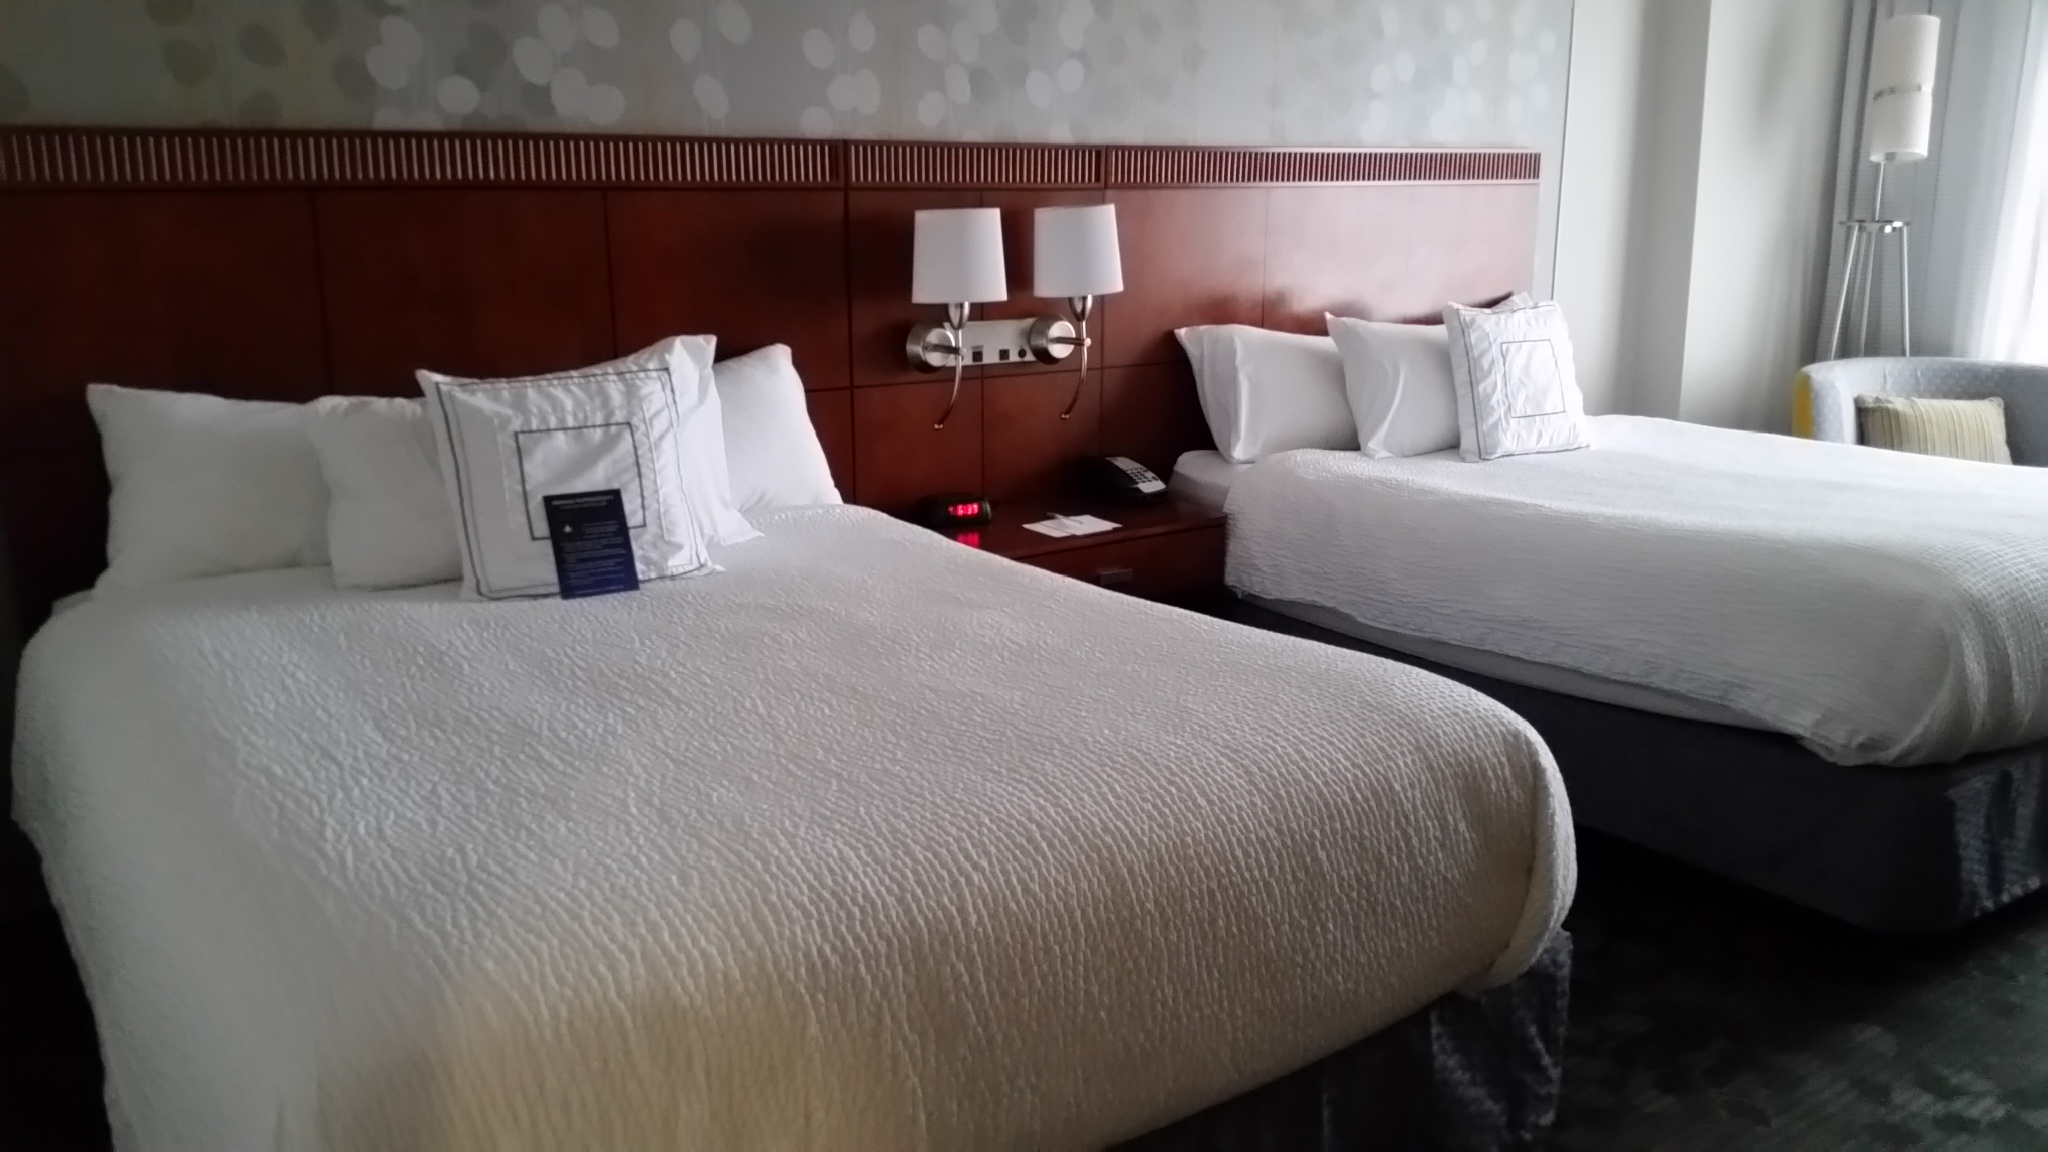 A standard room with two full size beds at the Courtyard Marriott hotel in Gettysburg